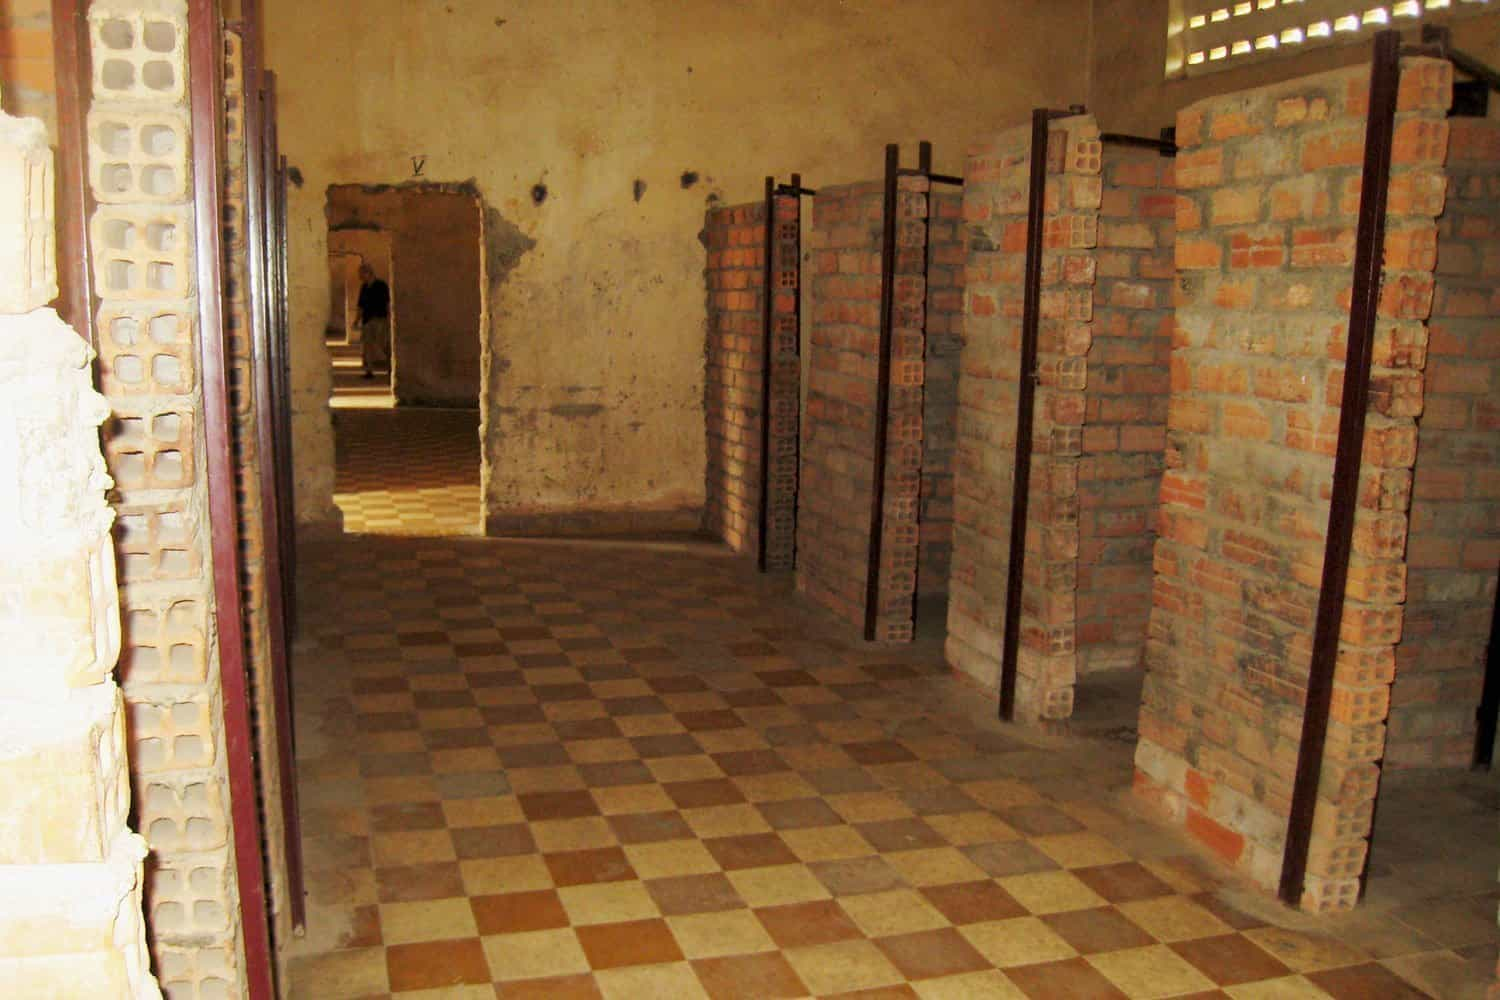 Classrooms became cells at S21 prison, Cambodia